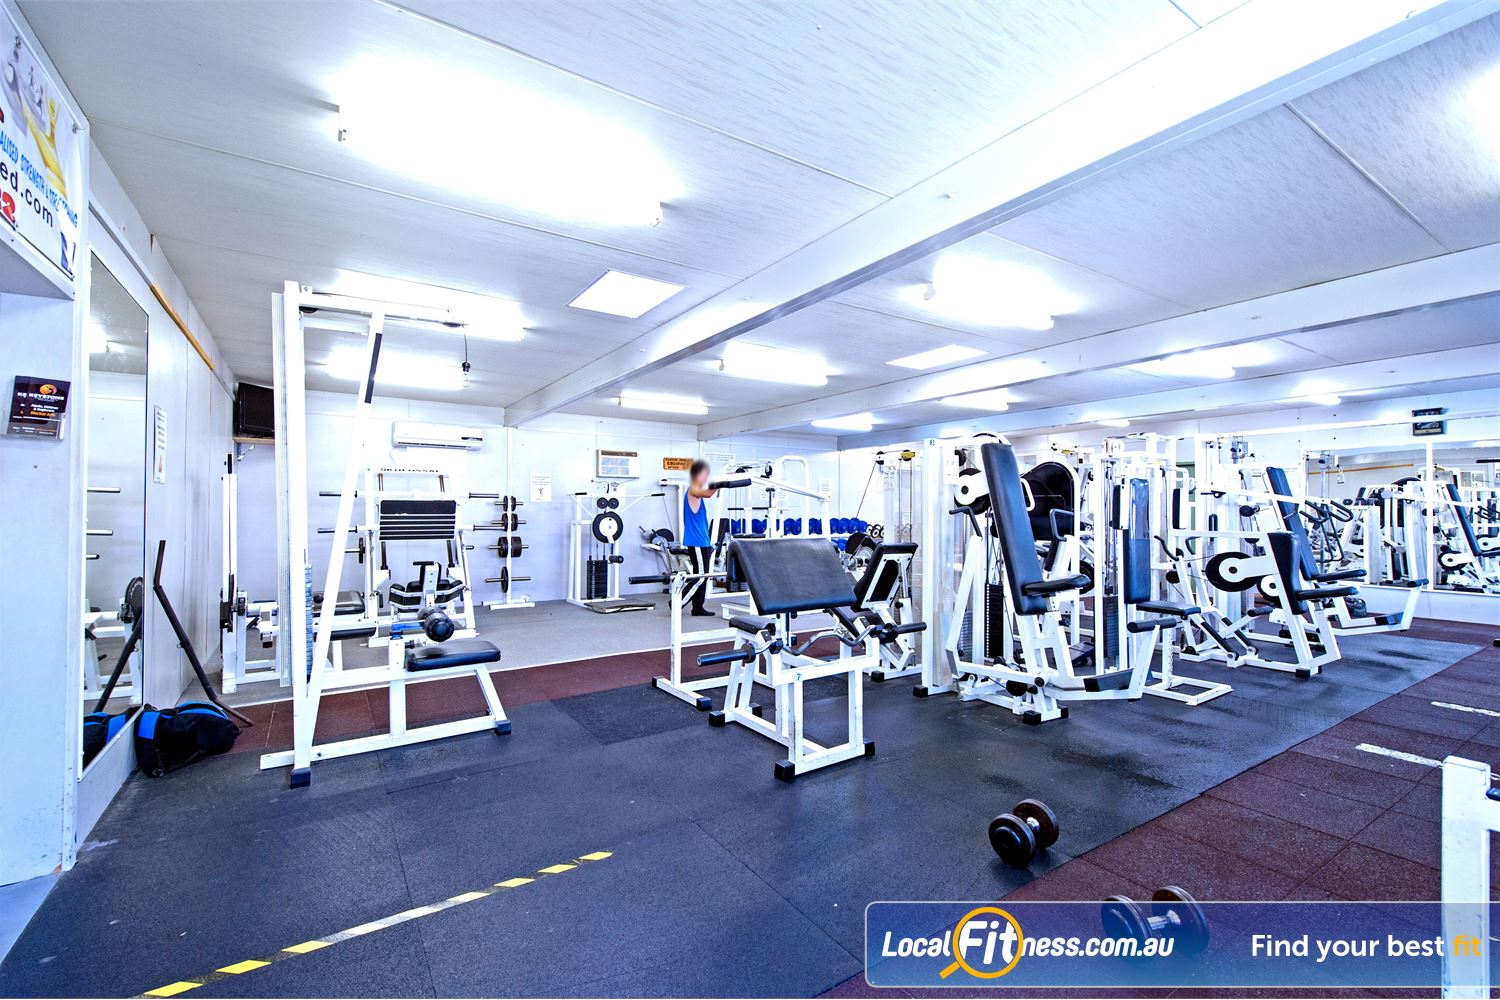 Waves Fitness and Aquatic Centre Baulkham Hills Welcome to the Baulkham Hills gym.